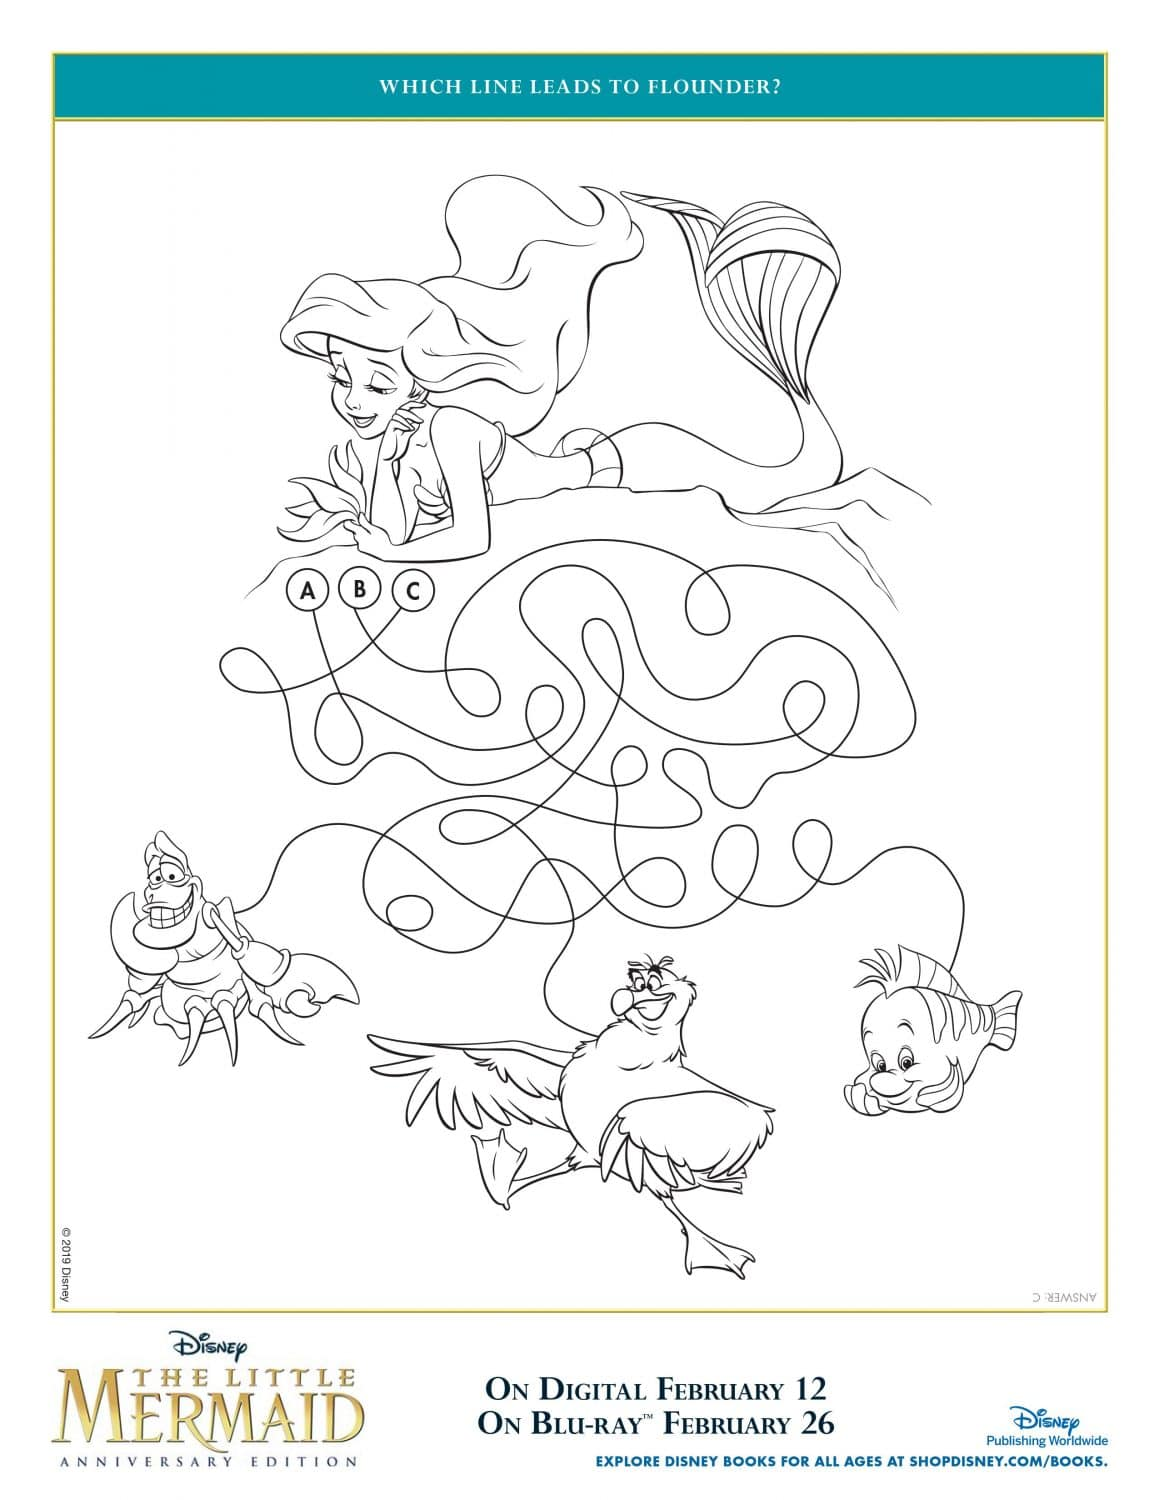 The Little Mermaid Find Flounder Coloring Page